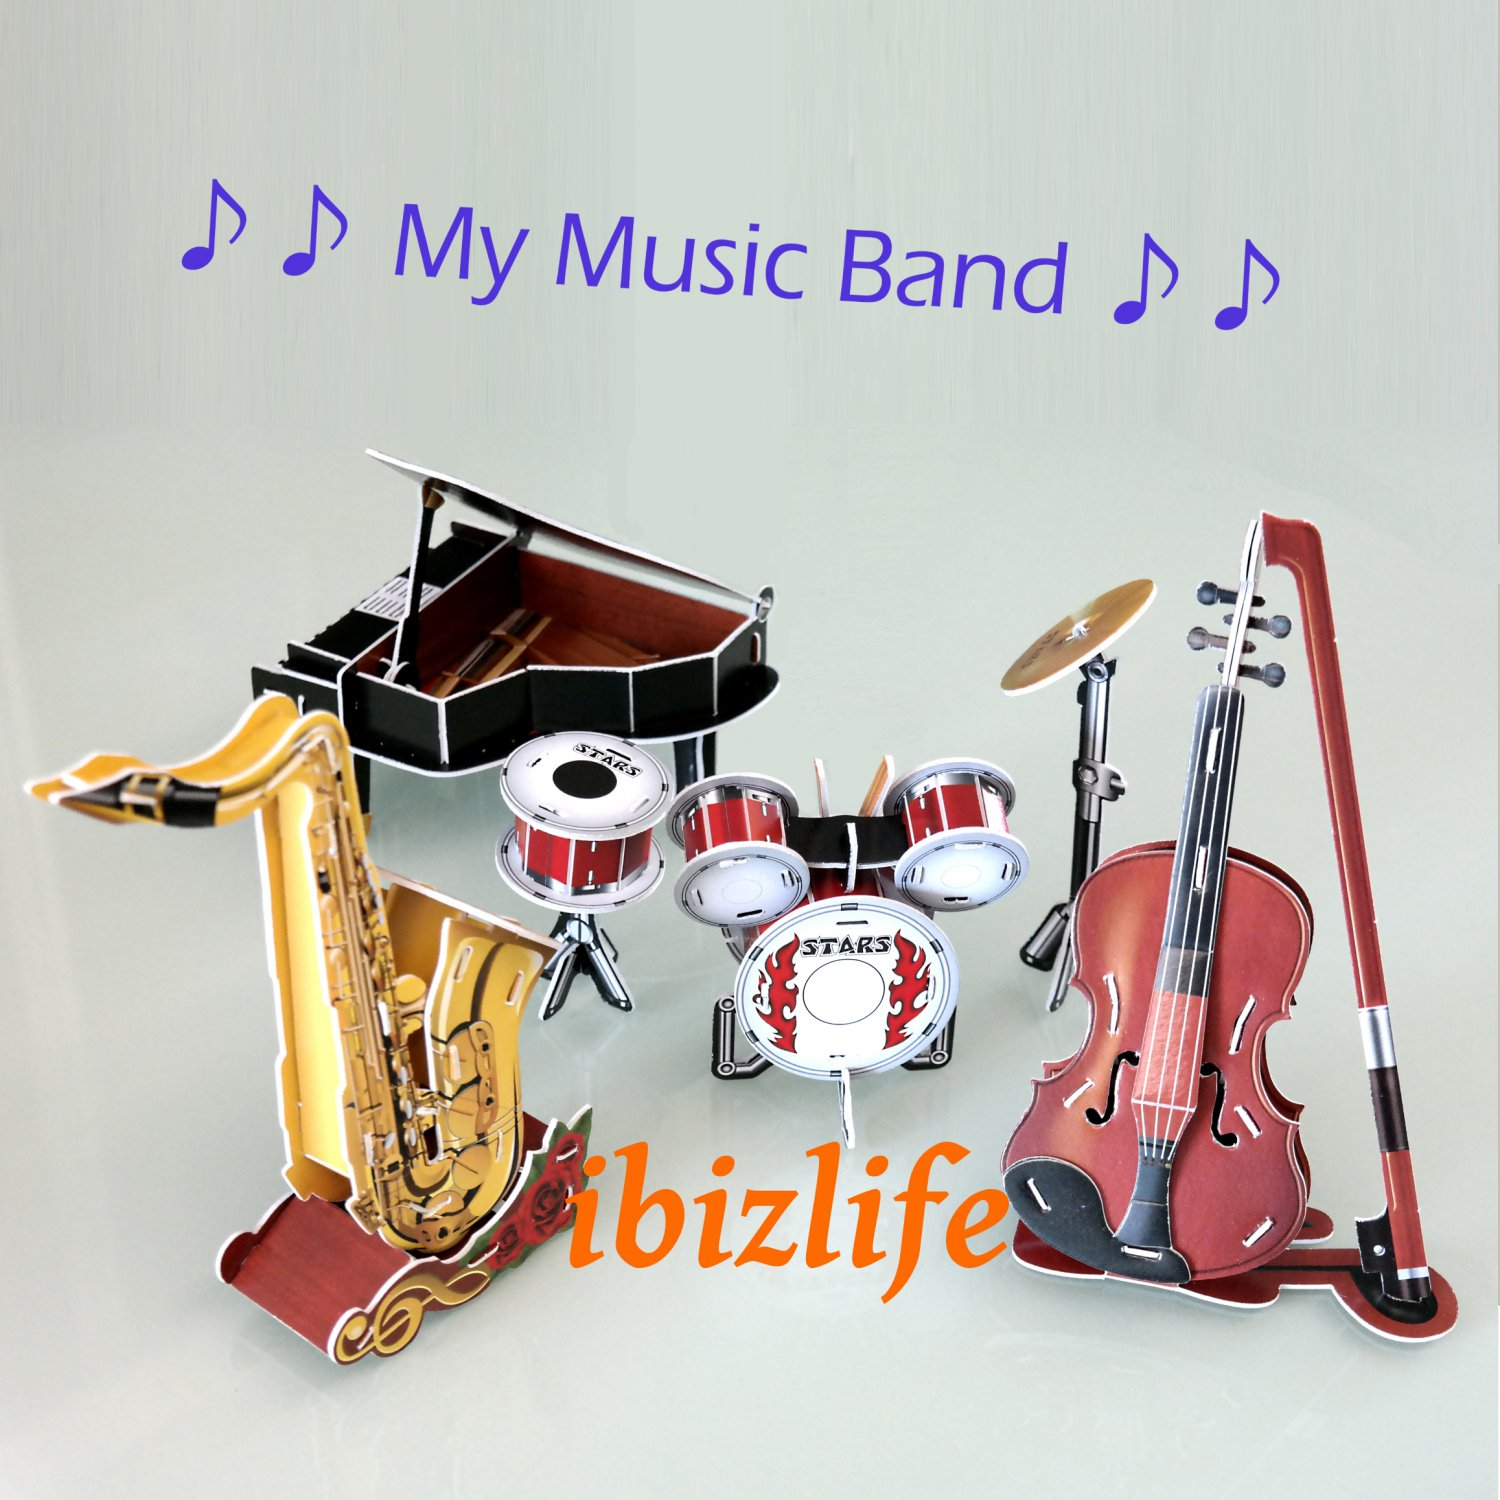 3D PUZZLE DIY jigsaw model Music Band set as gift - 4 Piano-Violin-Drum-saxaphone (PC40)